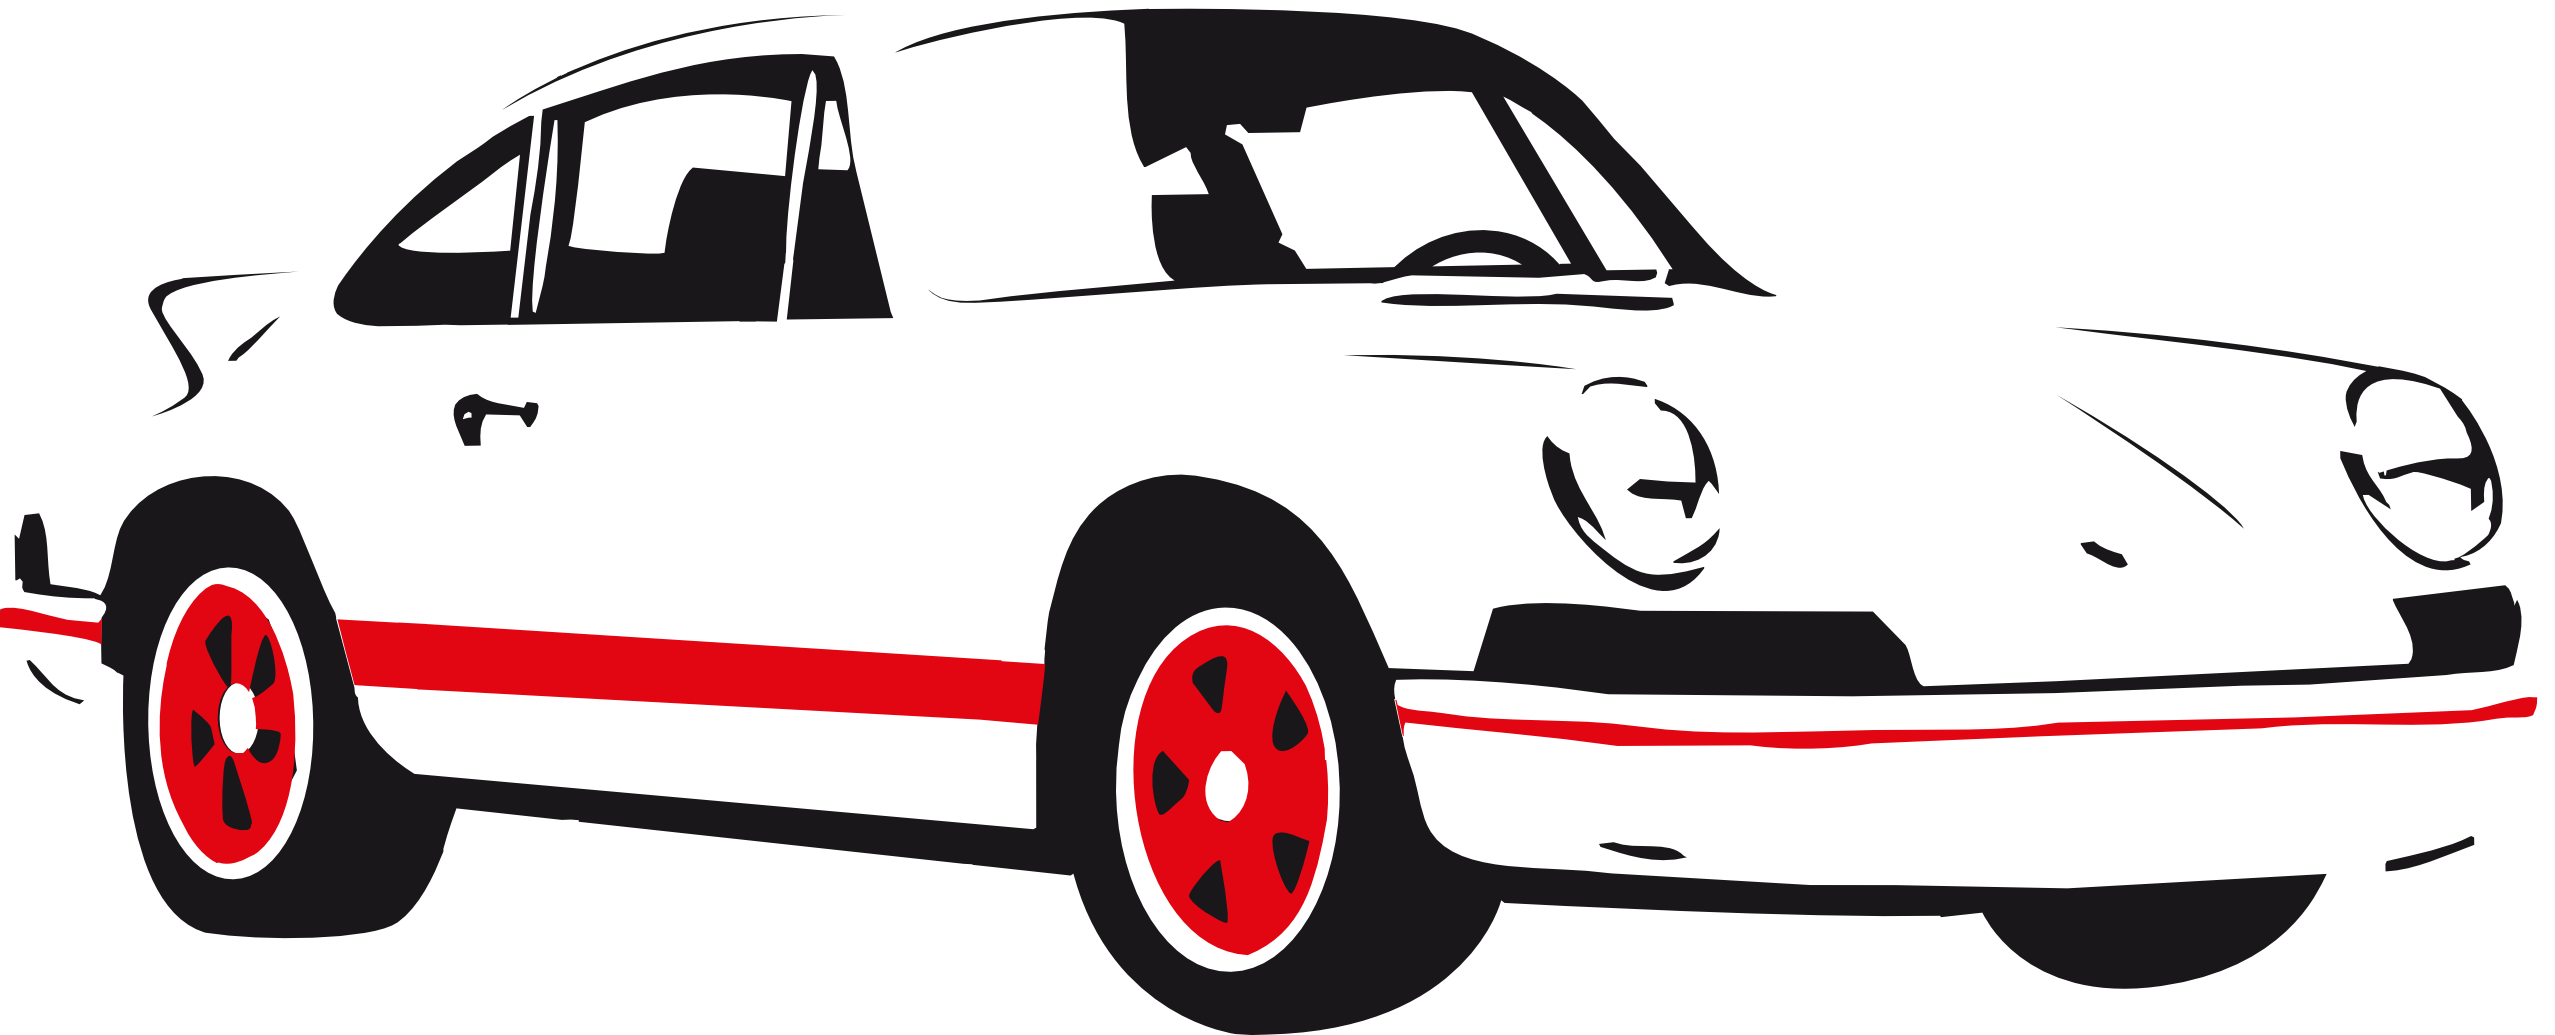 Car Front Vector Png - ClipArt Best